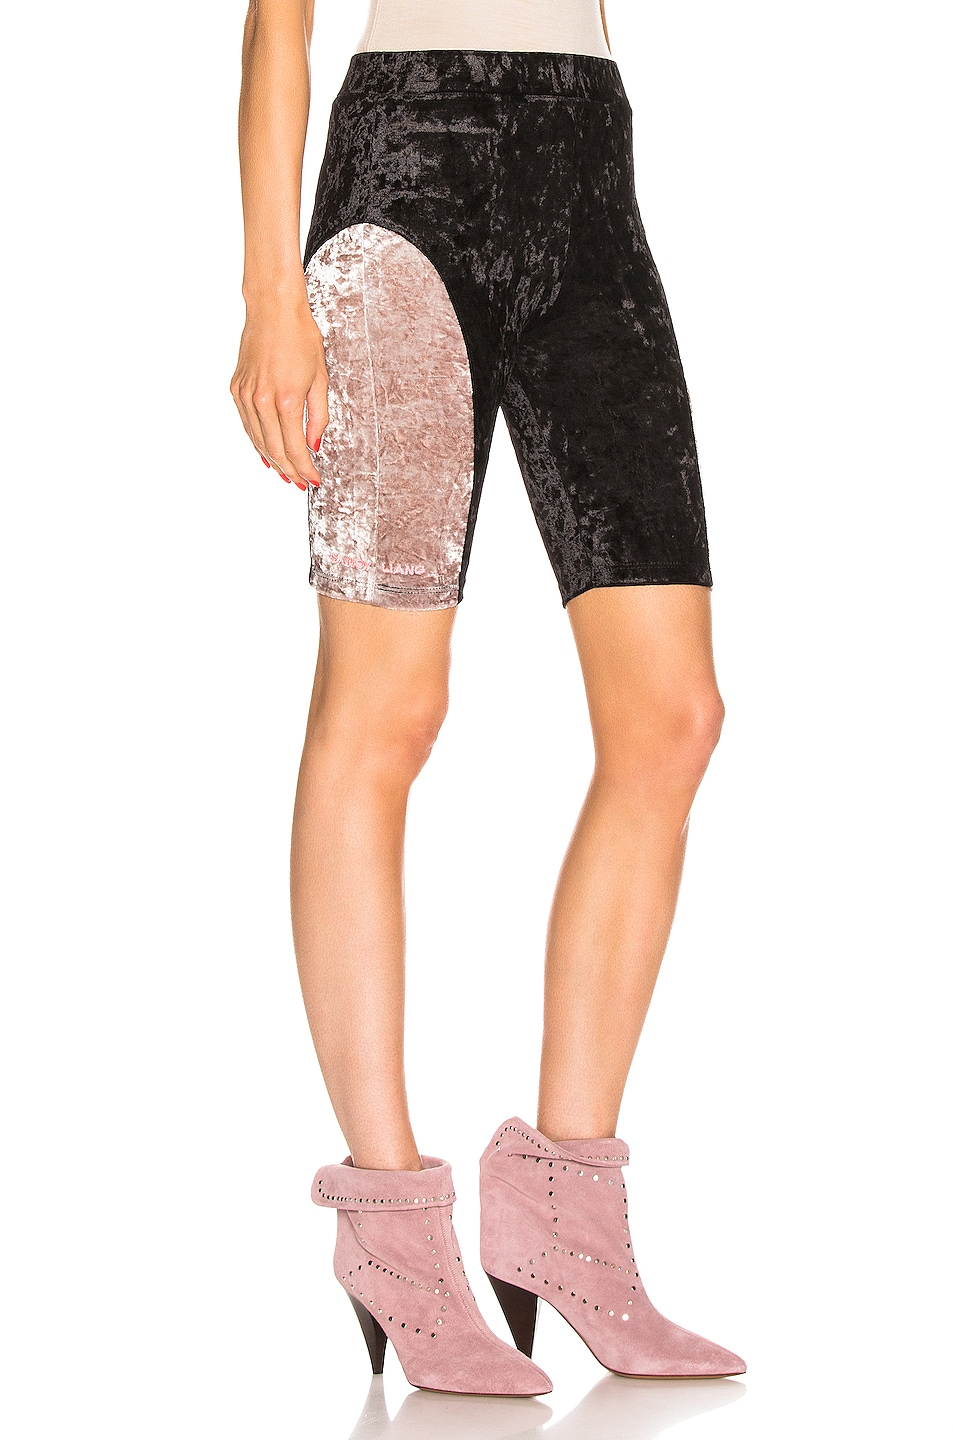 Image 2 of Sandy Liang Bobo Shorts in Black & Dusty Pink